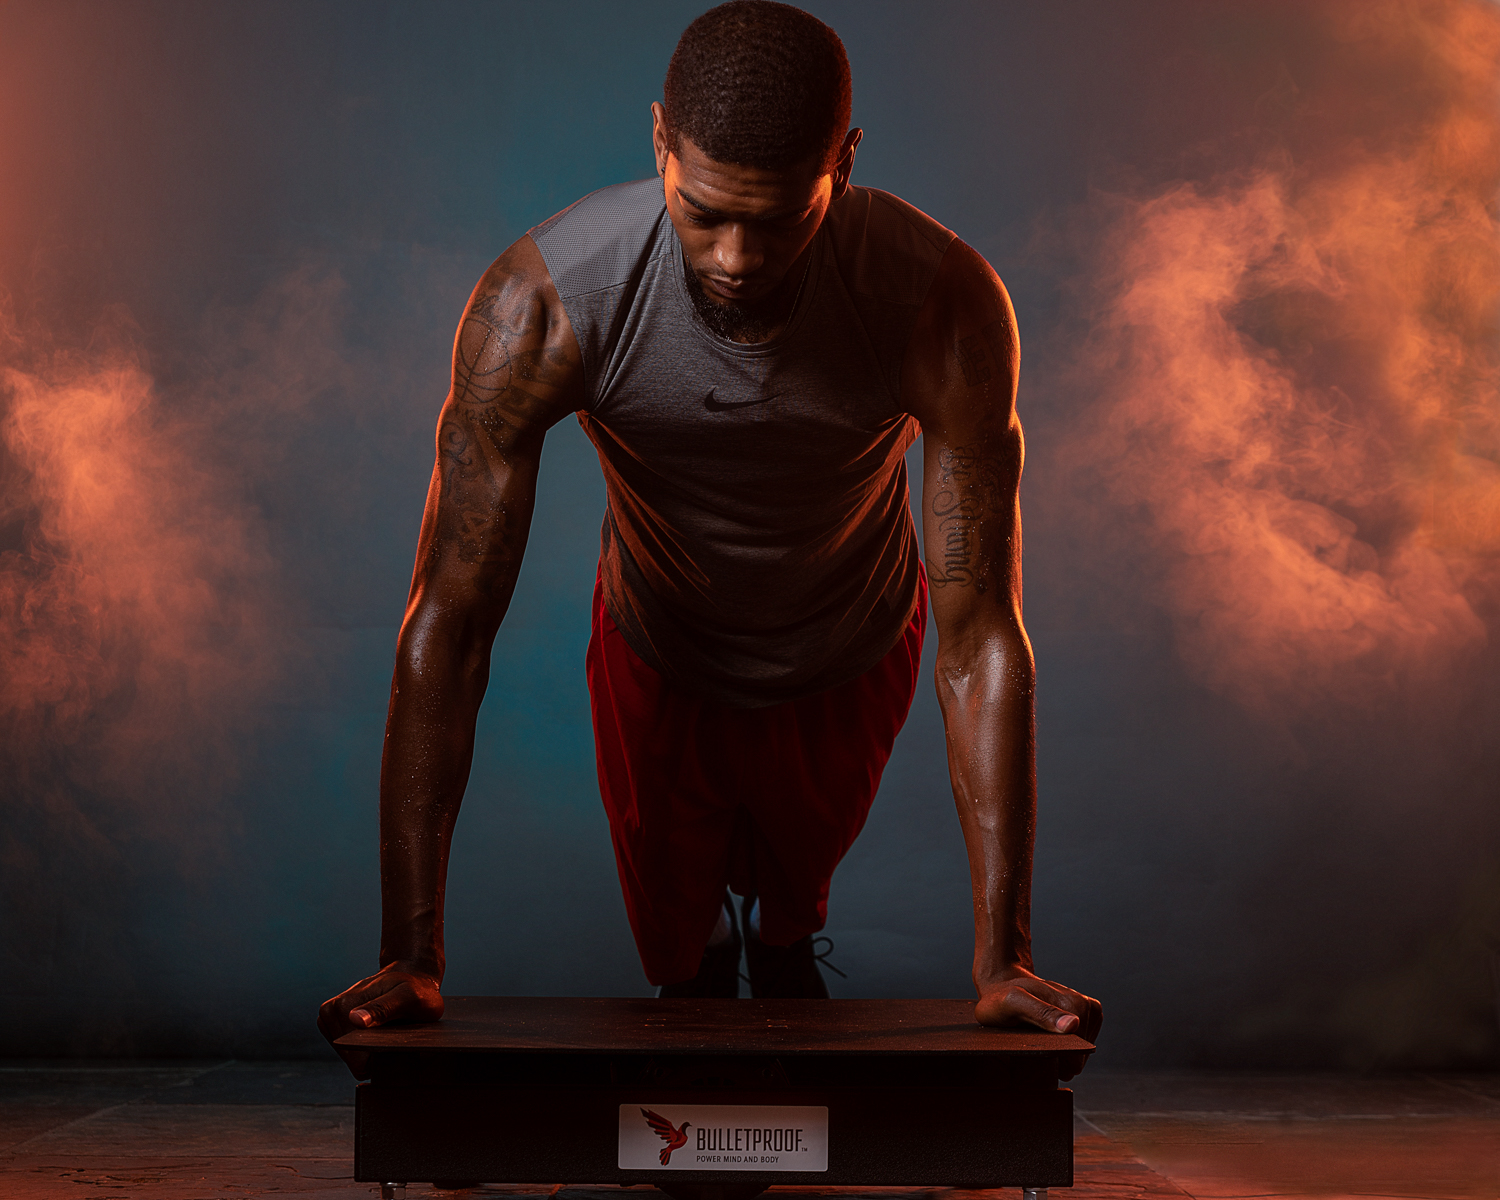 africanamerican_man_bulletproof_vibration_plate_fitness-2944